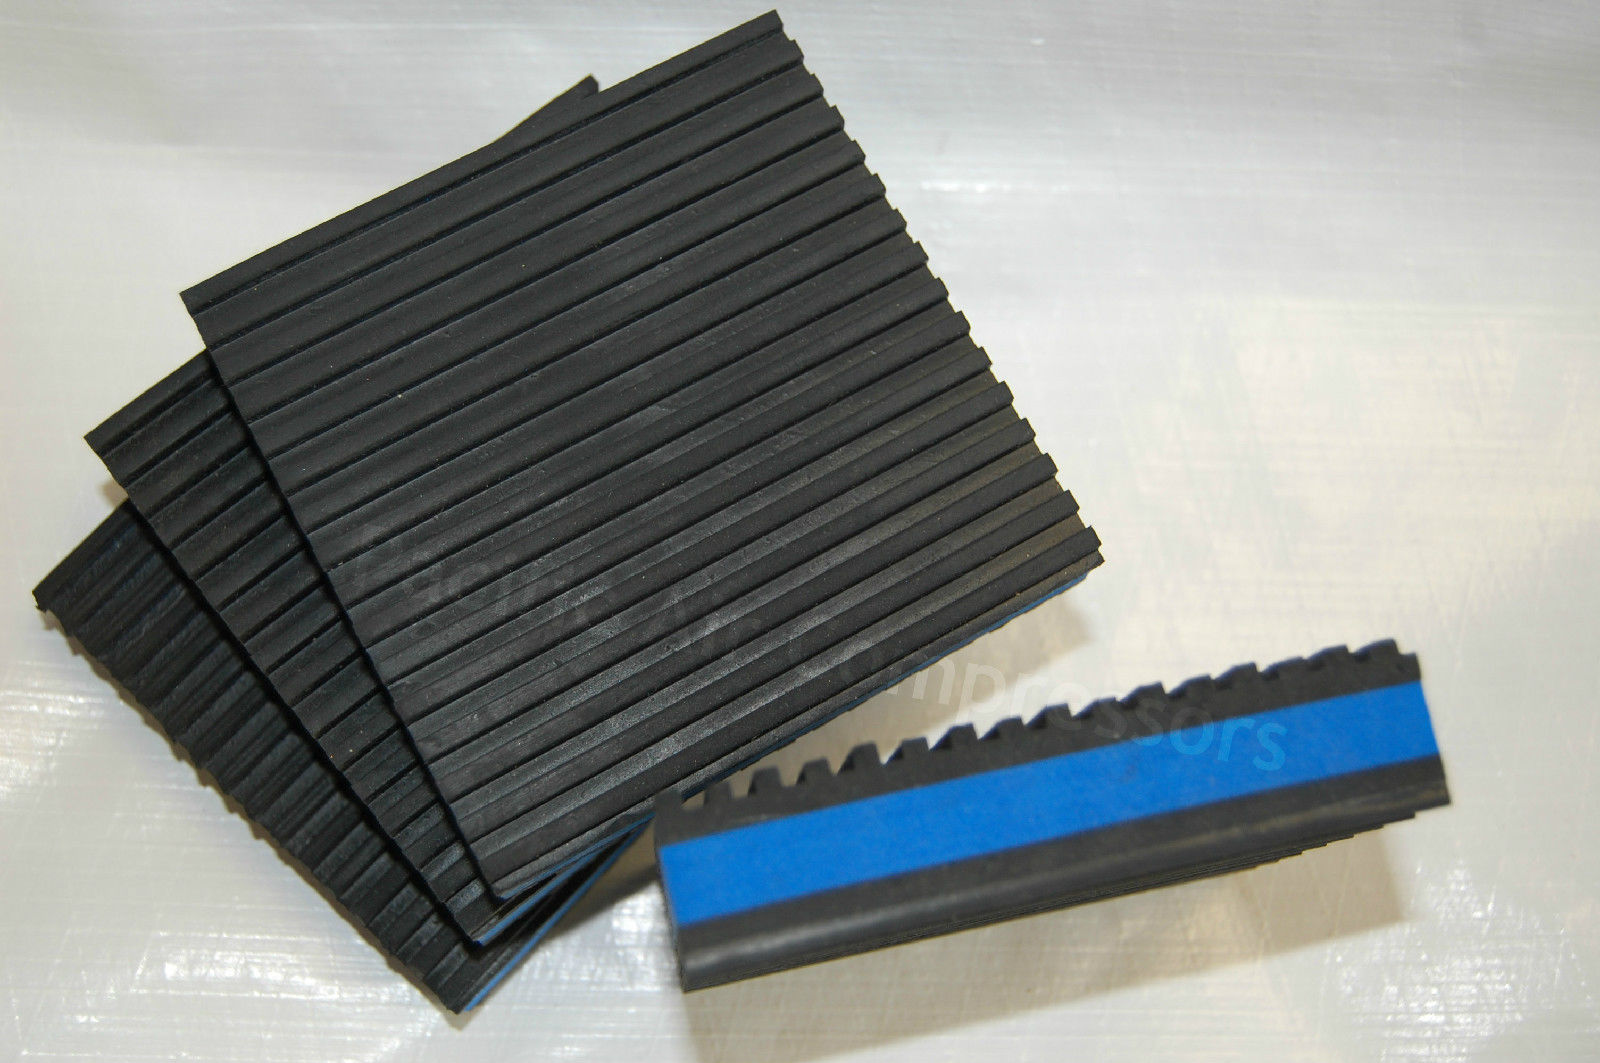 #0F6DBC VP7844 ANTI VIBRATION NEOPRENE RUBBER ISOLATION PADS SET  Highly Rated 8659 Air Conditioning Equipment Pad wallpapers with 1600x1063 px on helpvideos.info - Air Conditioners, Air Coolers and more